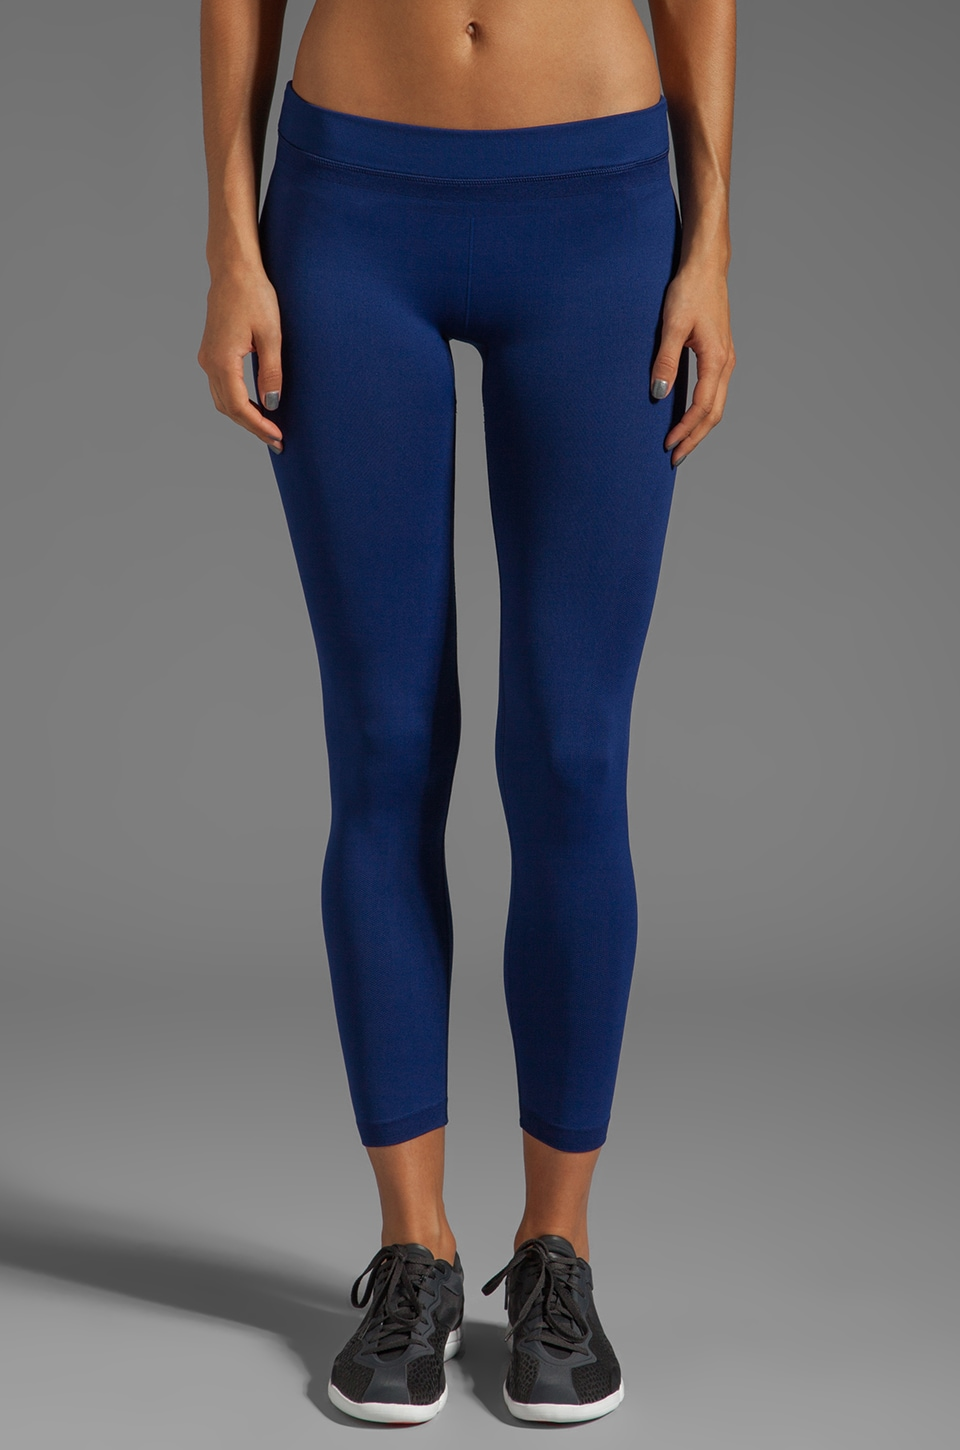 adidas by Stella McCartney ES SL 7-8 Tight Legging in Night Blue